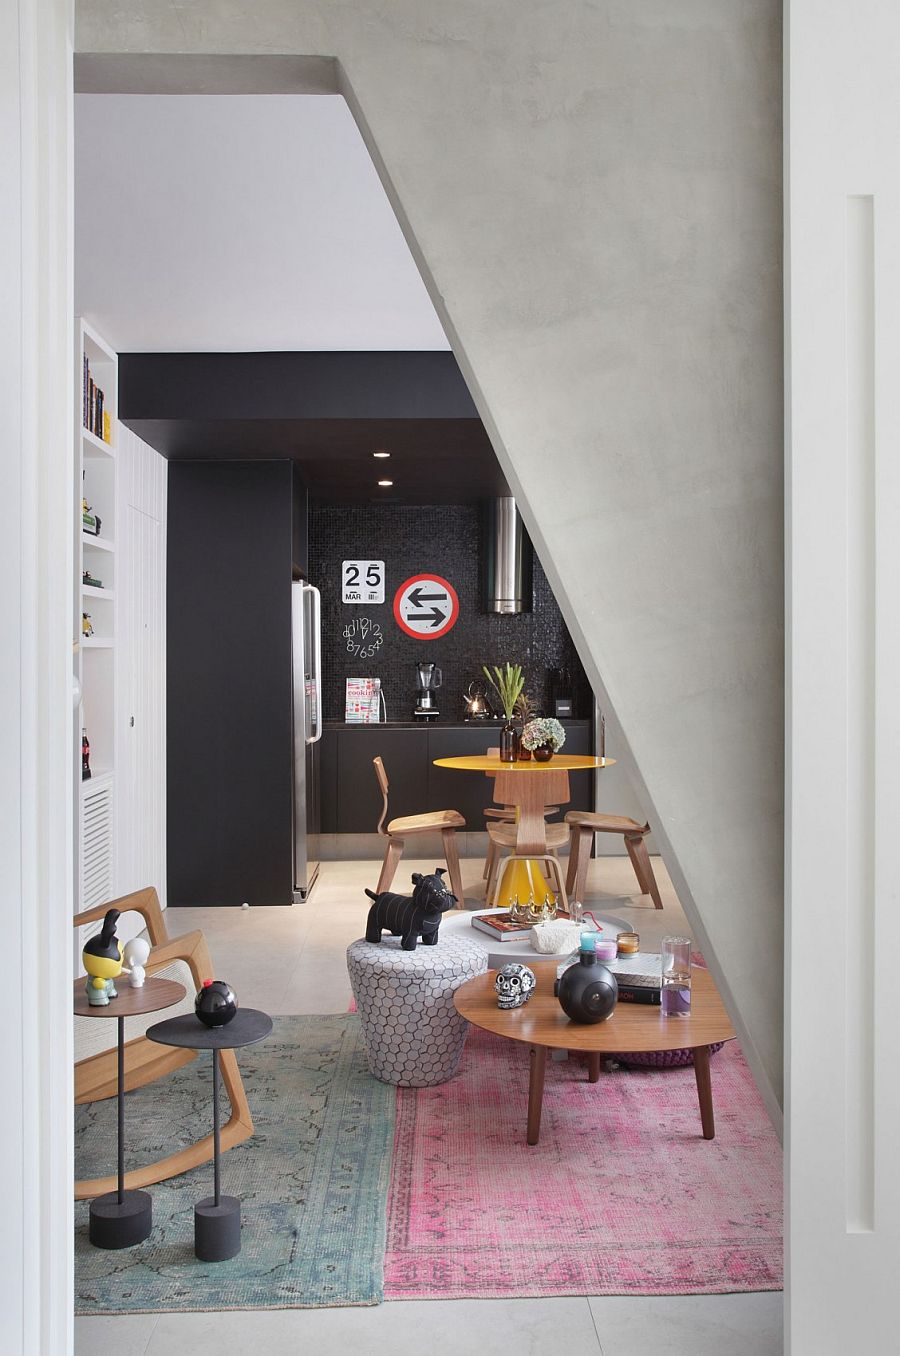 Interesting and playful decor choices shape the VF House